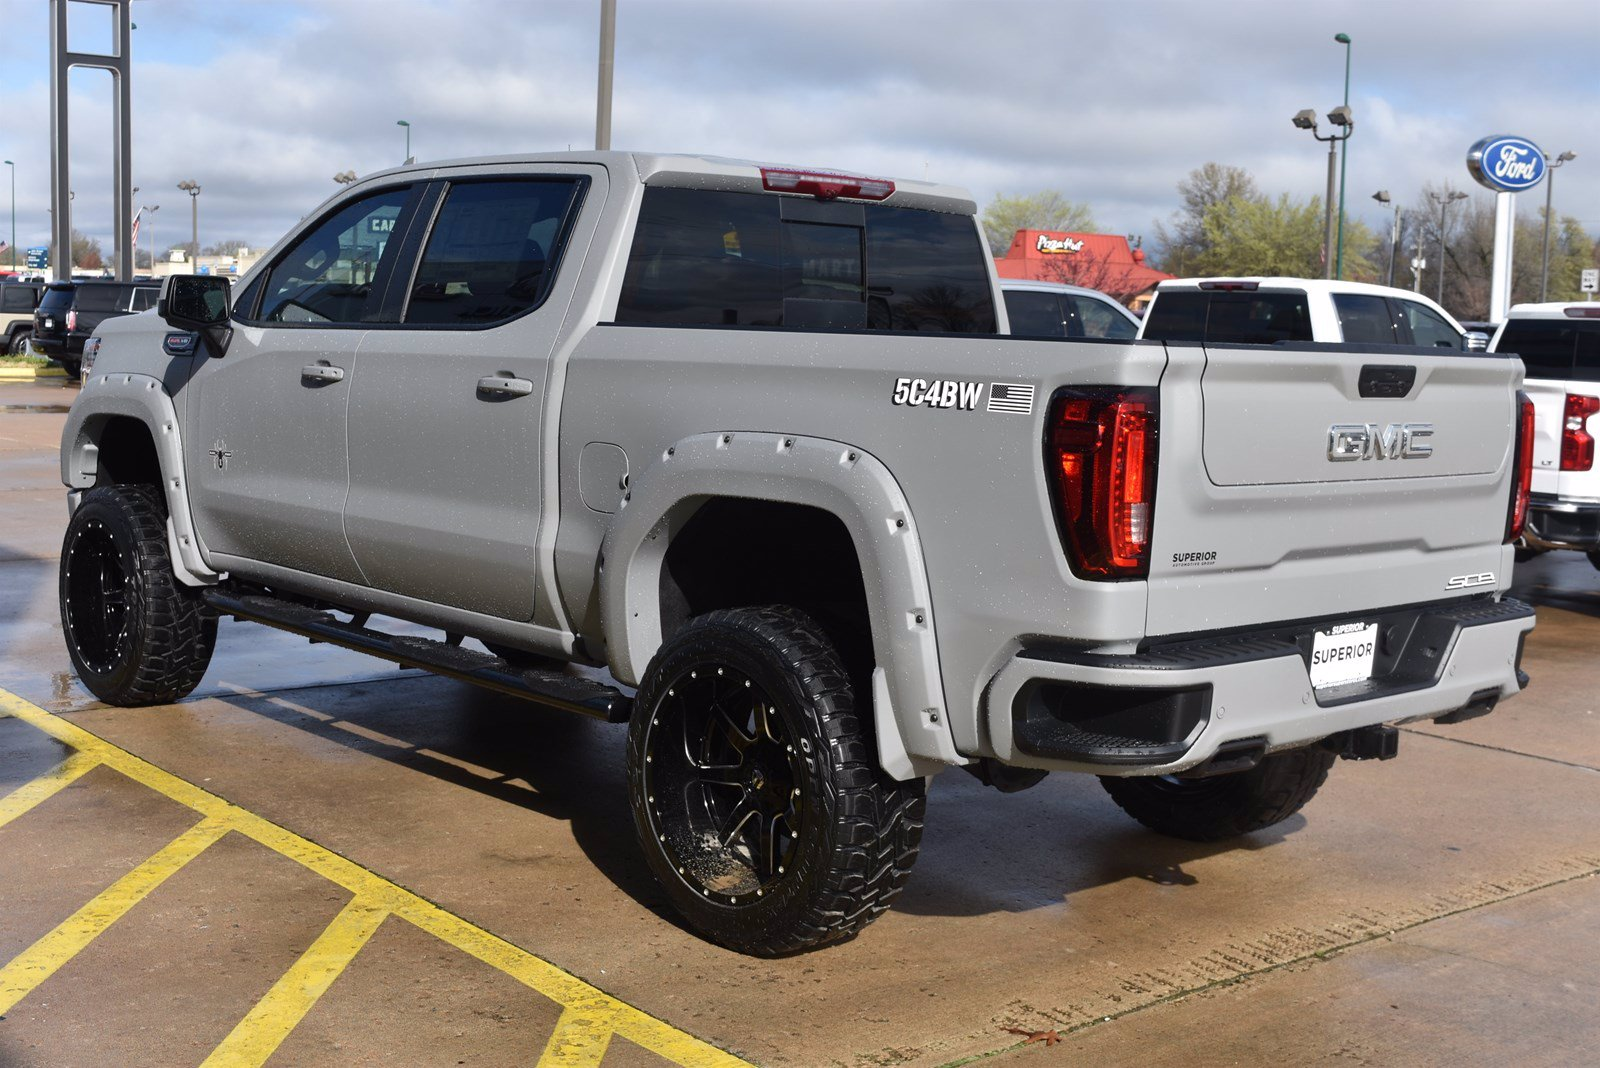 New 2020 Gmc Sierra 1500 Black Widow At4 4wd Crew Cab Crew Cab